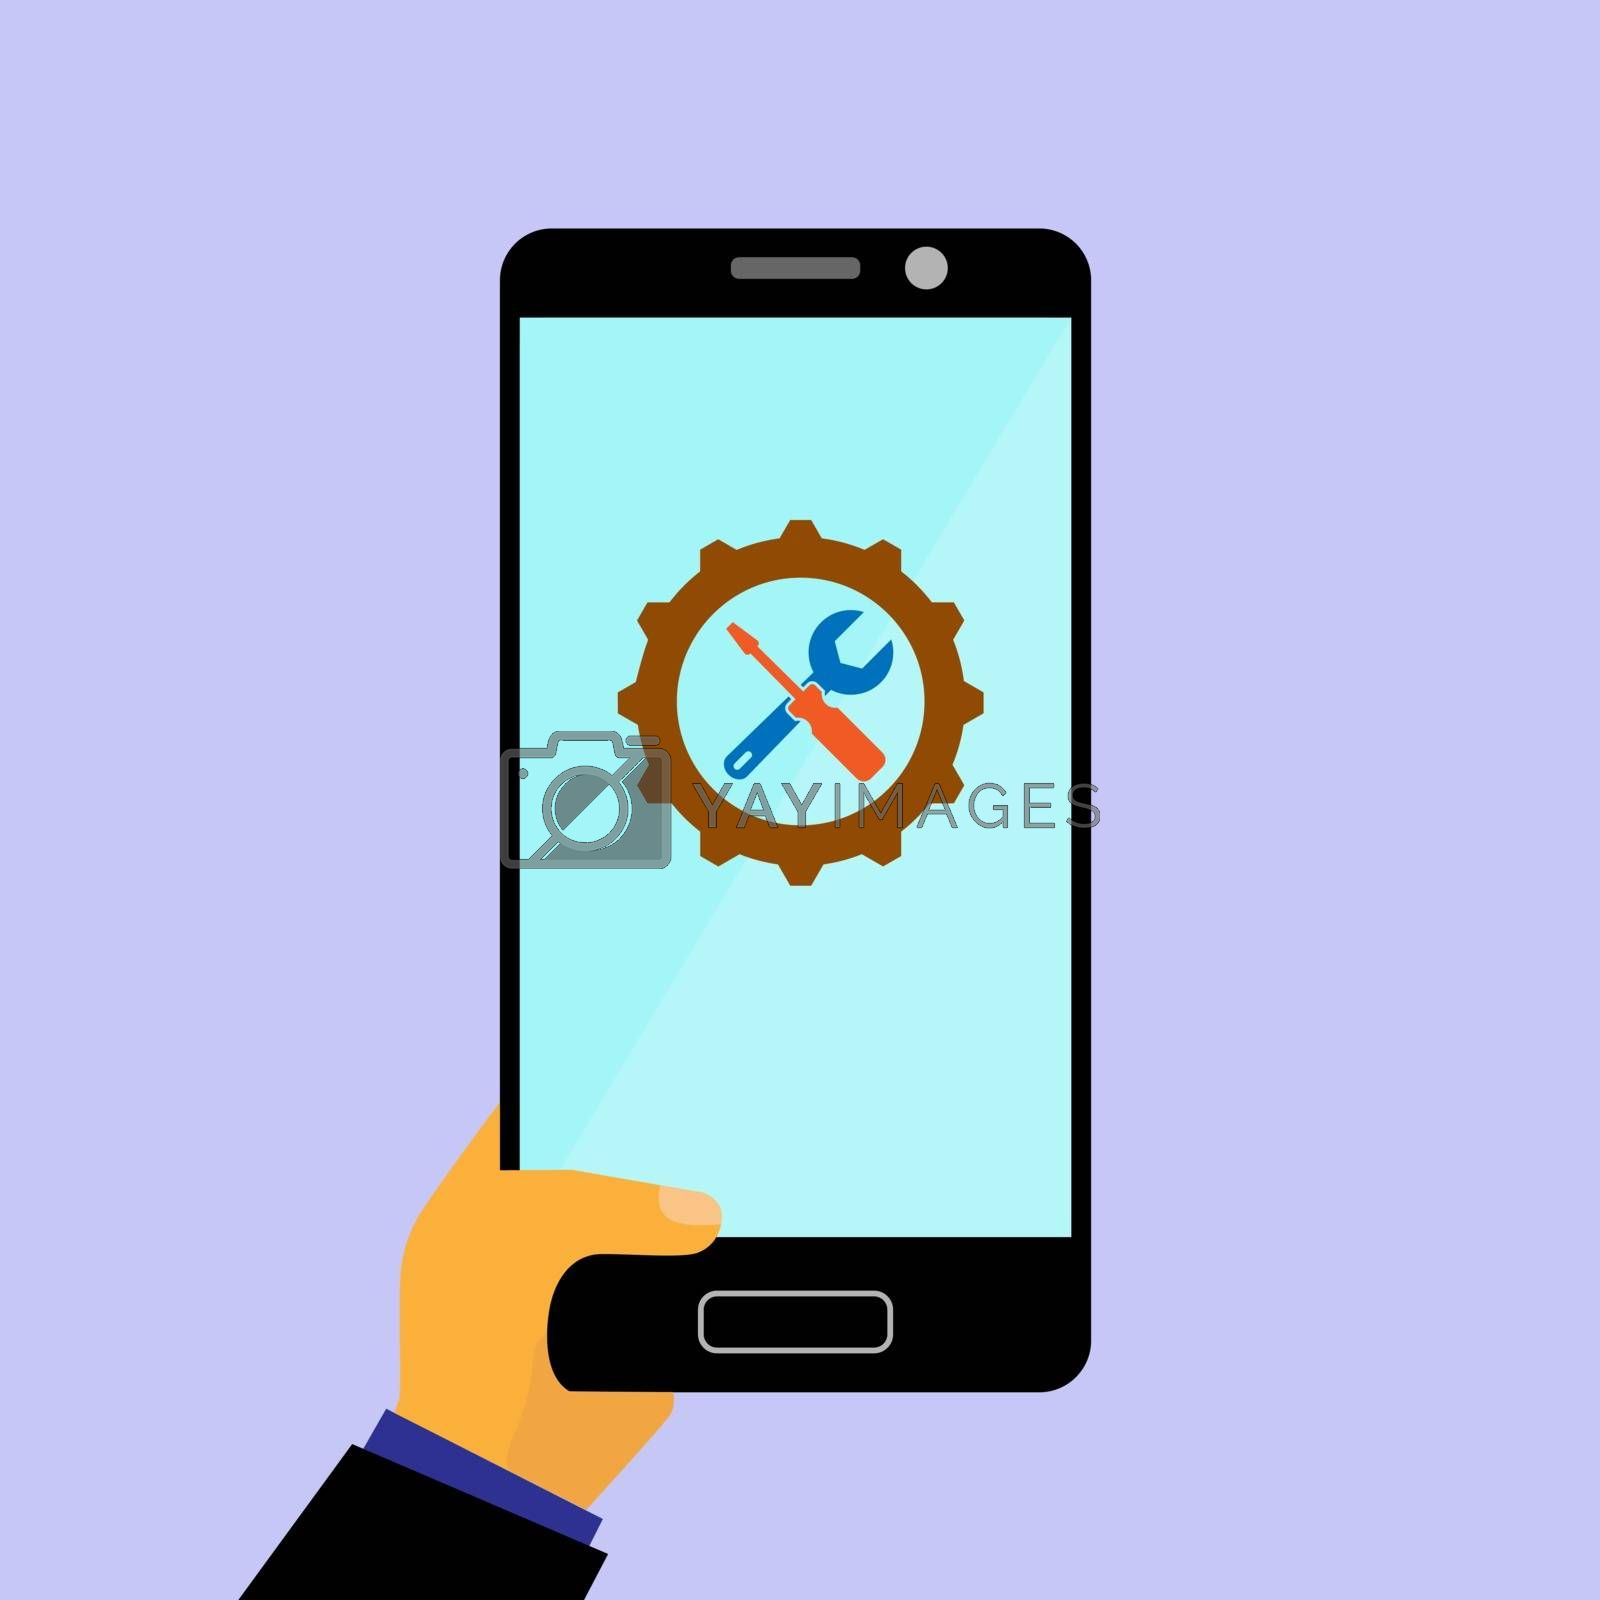 On the smartphone screen icon with gear, screwdriver and wrench